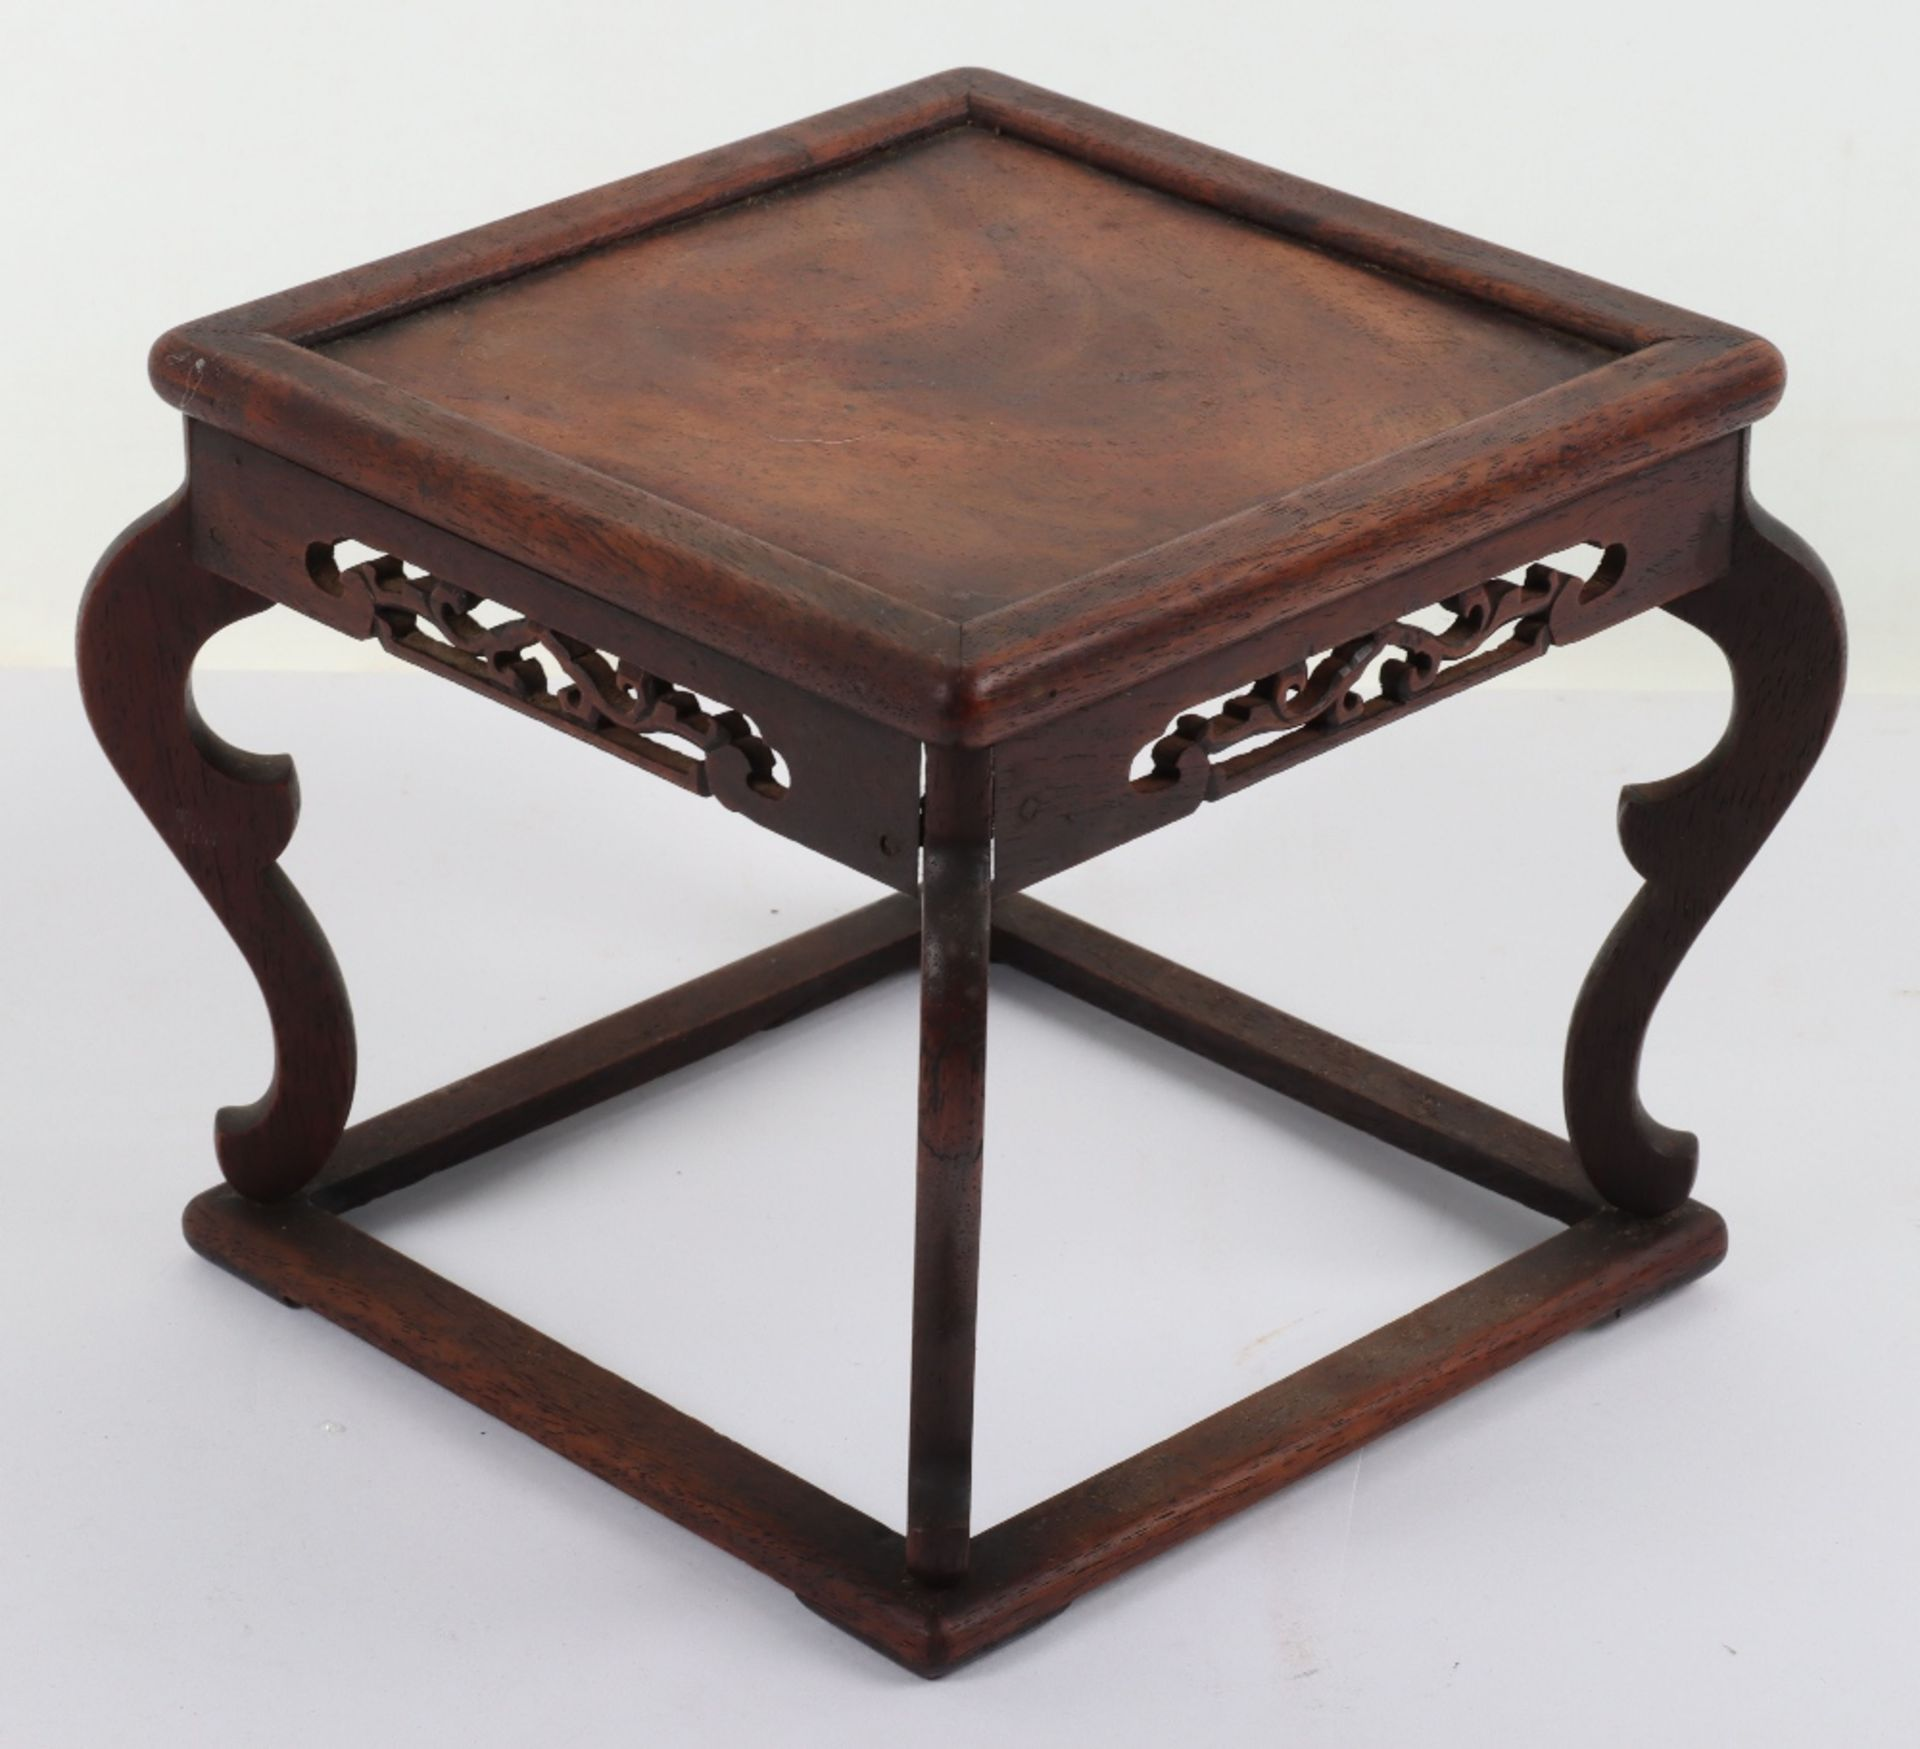 A 19th century small Chinese hardwood carved candle stand - Image 2 of 6